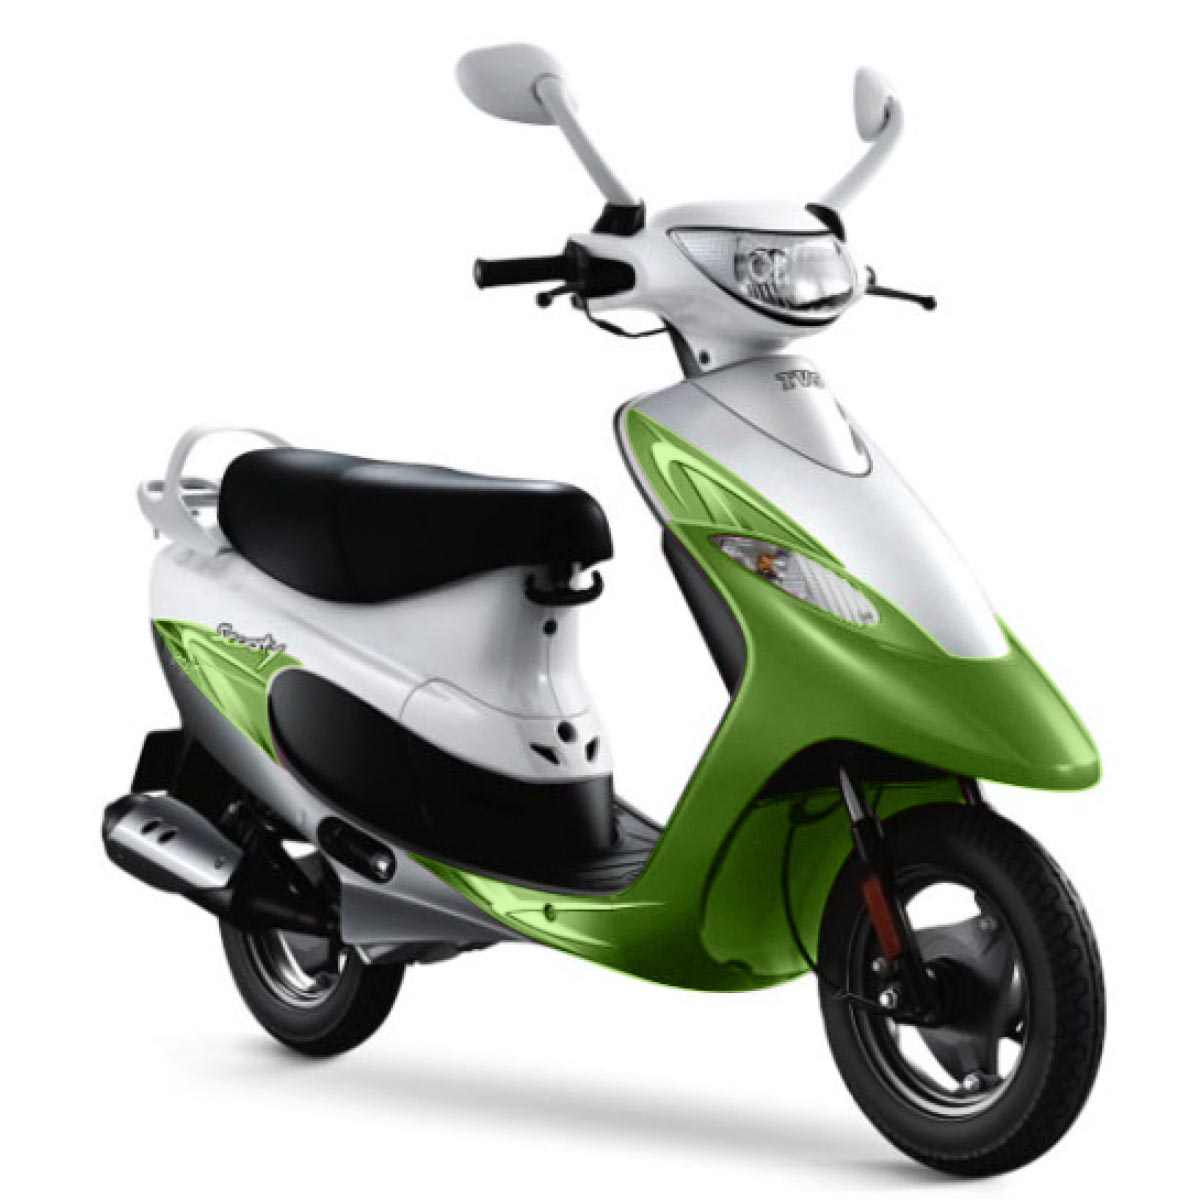 Tvs scooty photo - 8